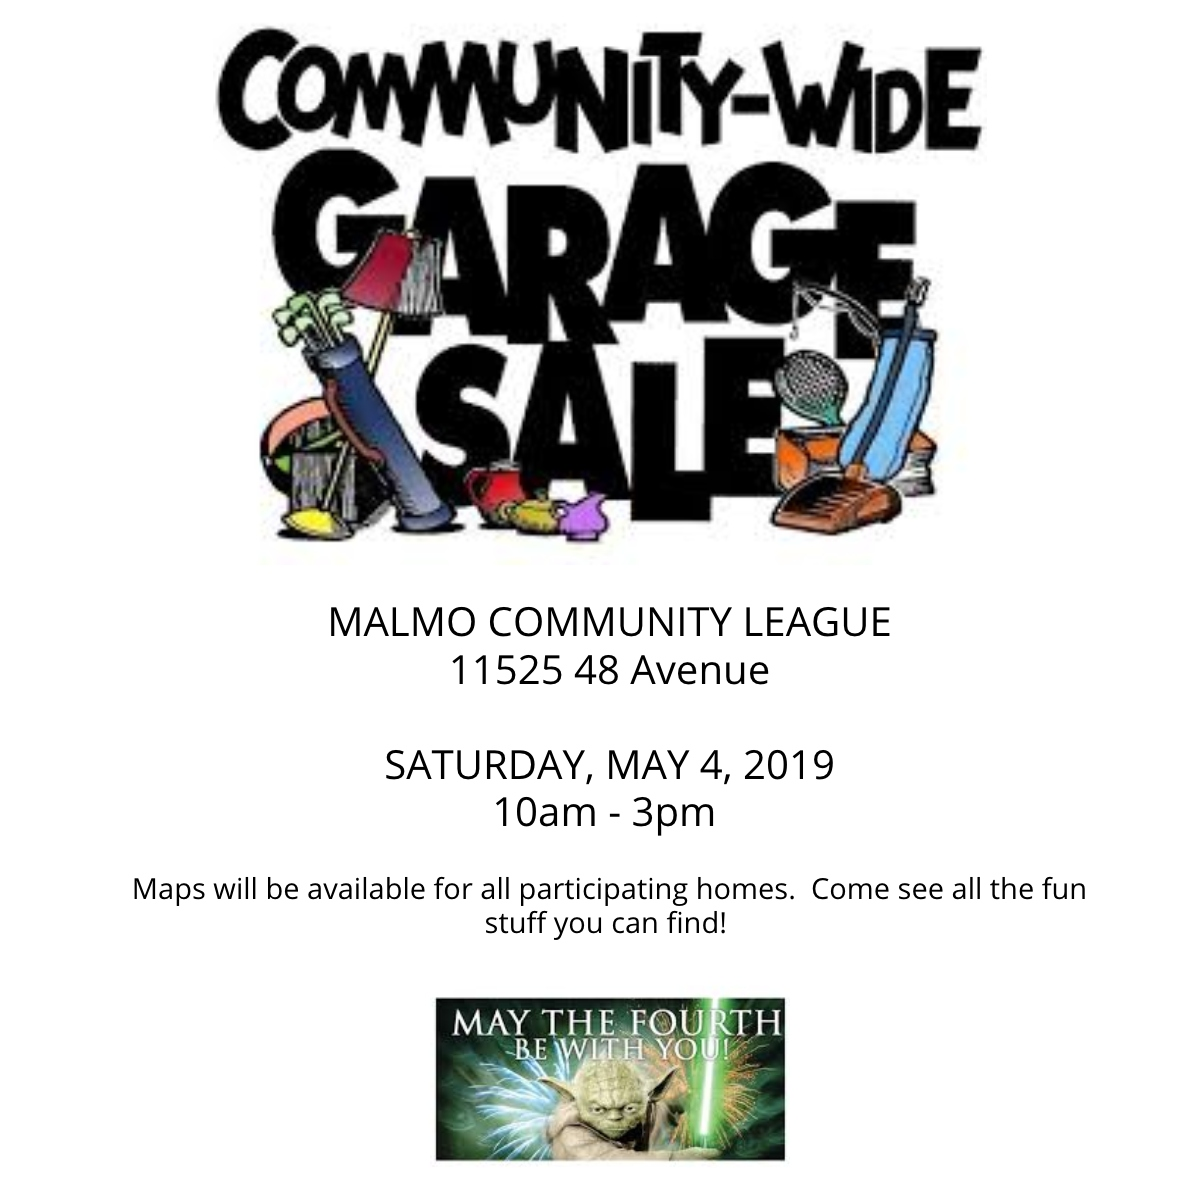 2019 Malmo Community Wide Garage Sale.jpg